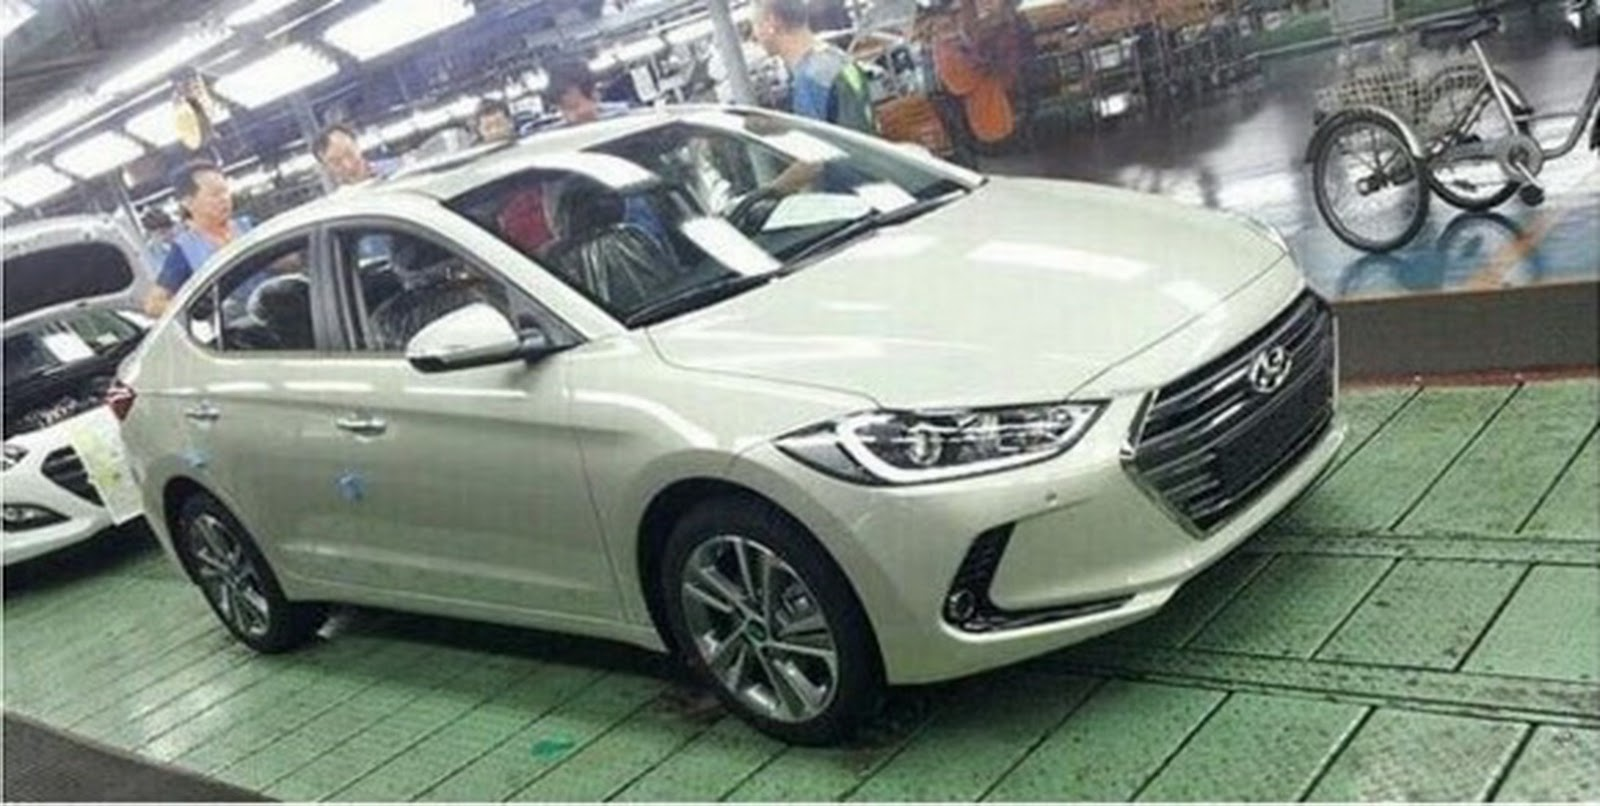 All New 2017 Hyundai Elantra Revealed In Leaked Shots Carscoops Com